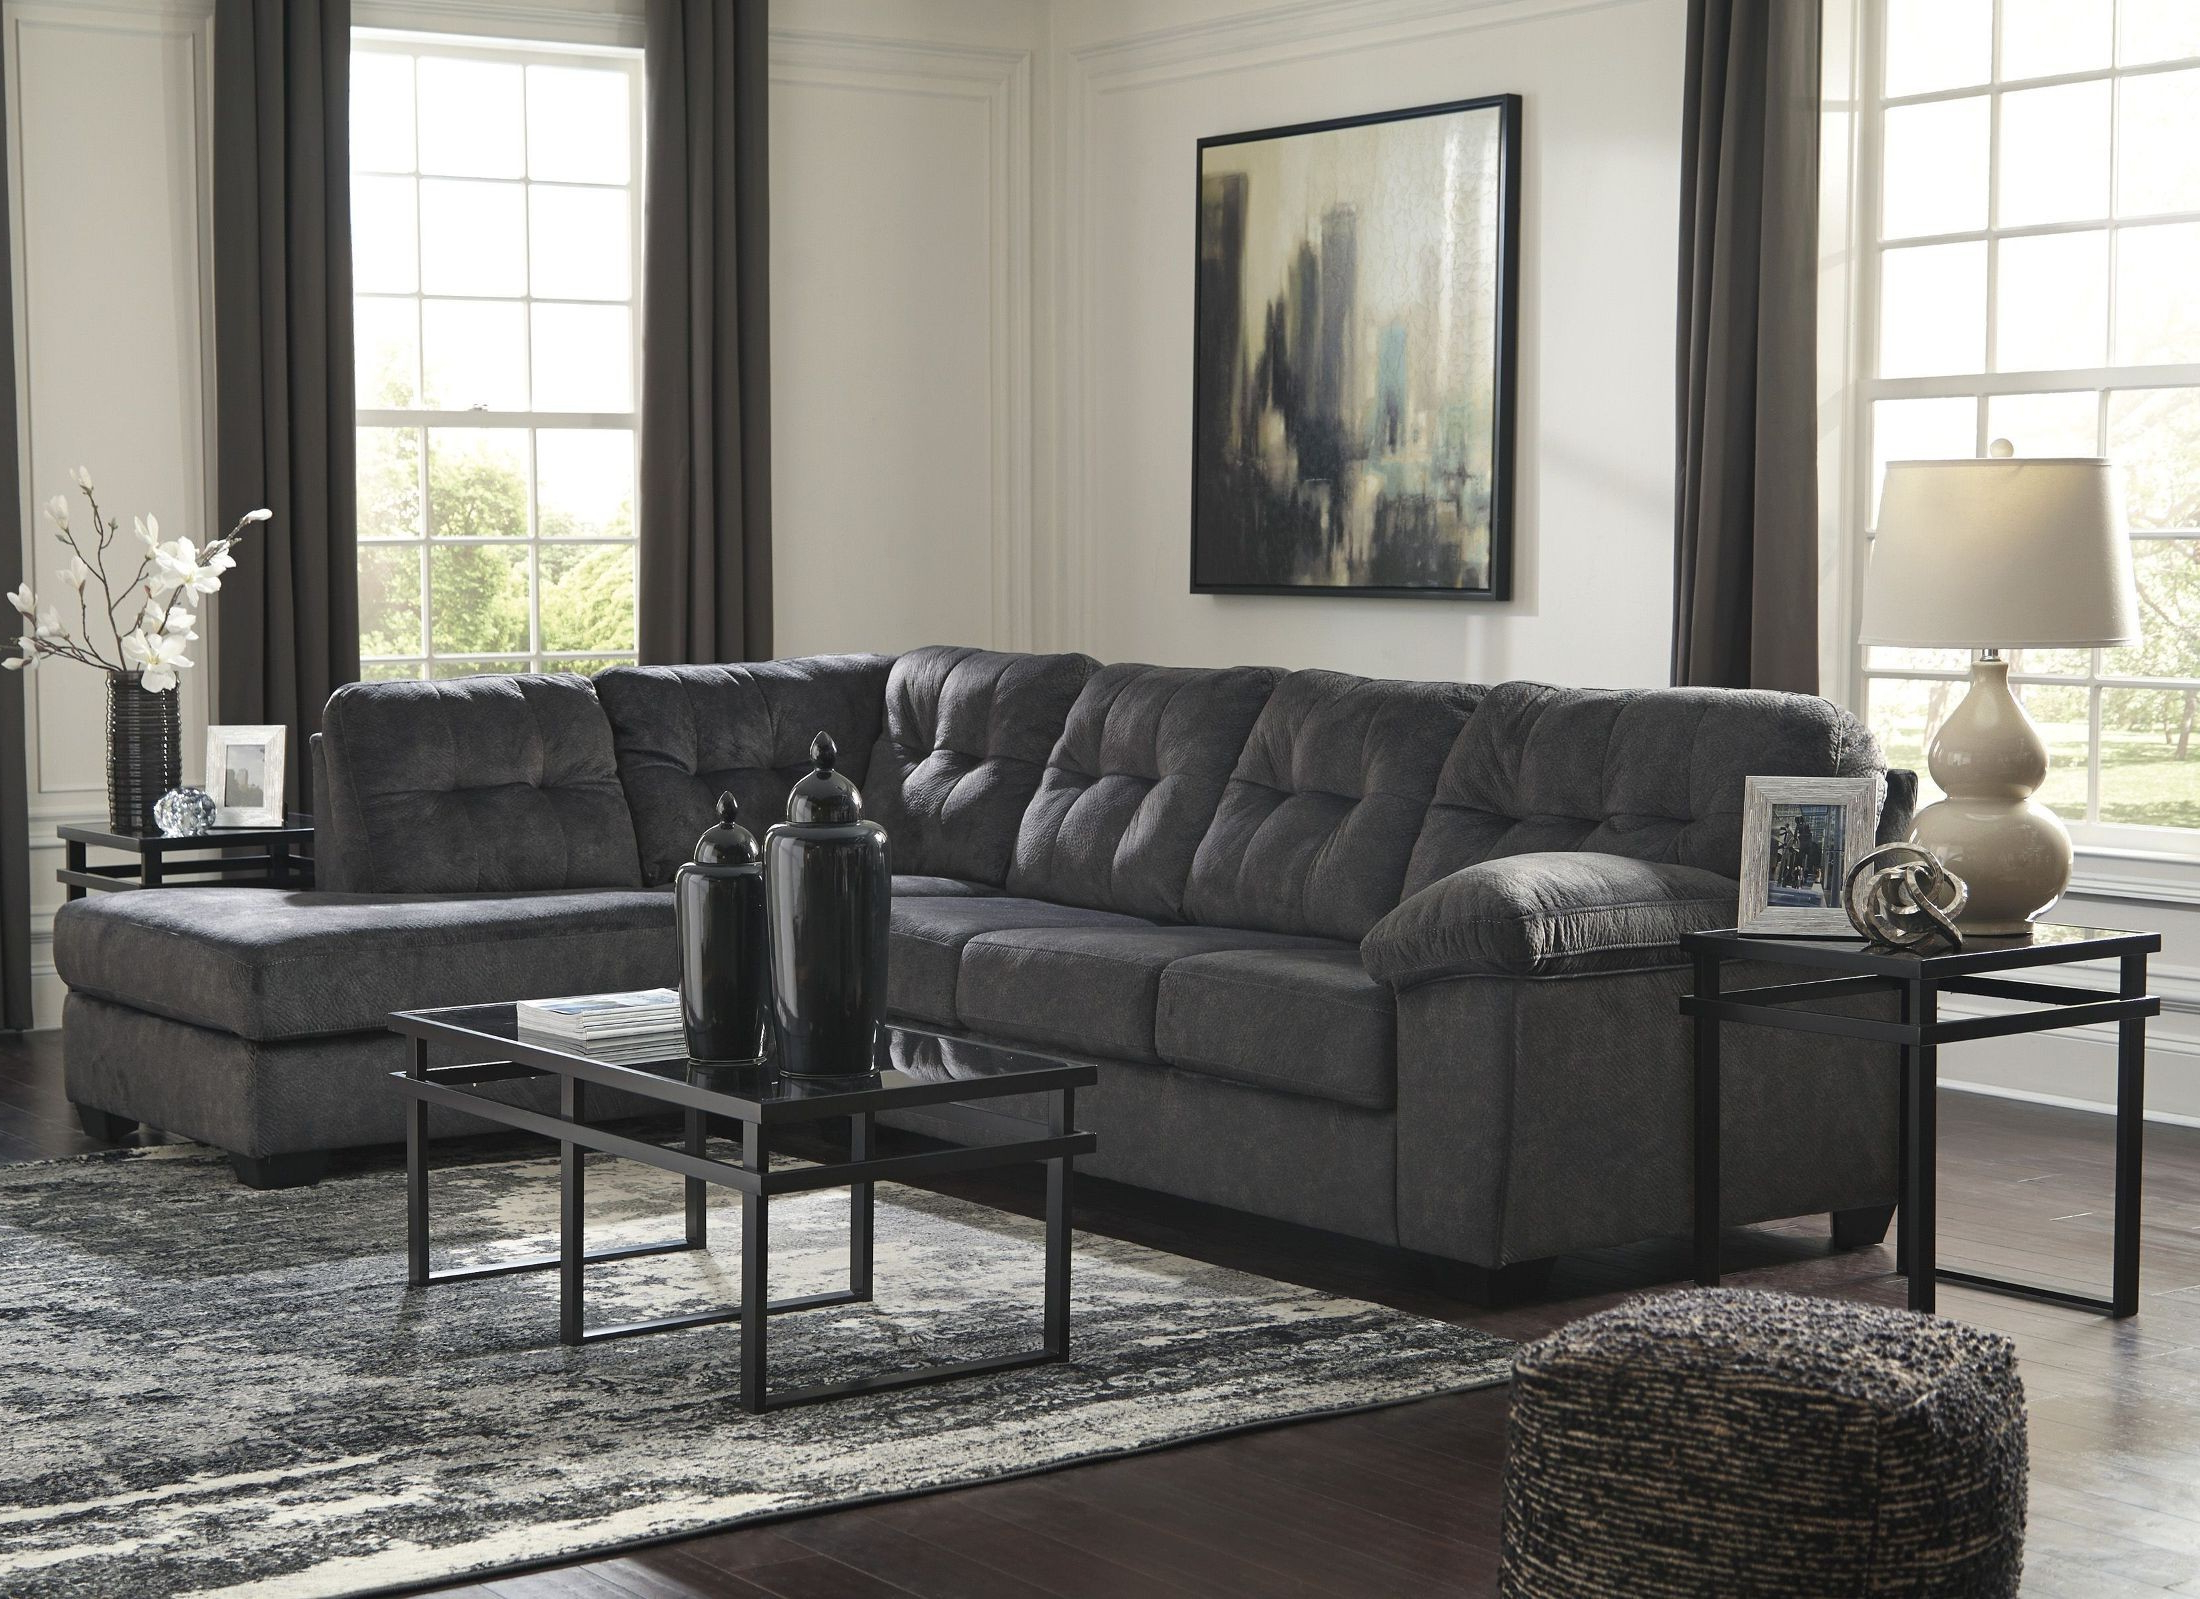 Kerri 2 Piece Sectionals With Laf Chaise Within Popular Signature Designashley Accrington Granite Raf Sectional (View 18 of 20)